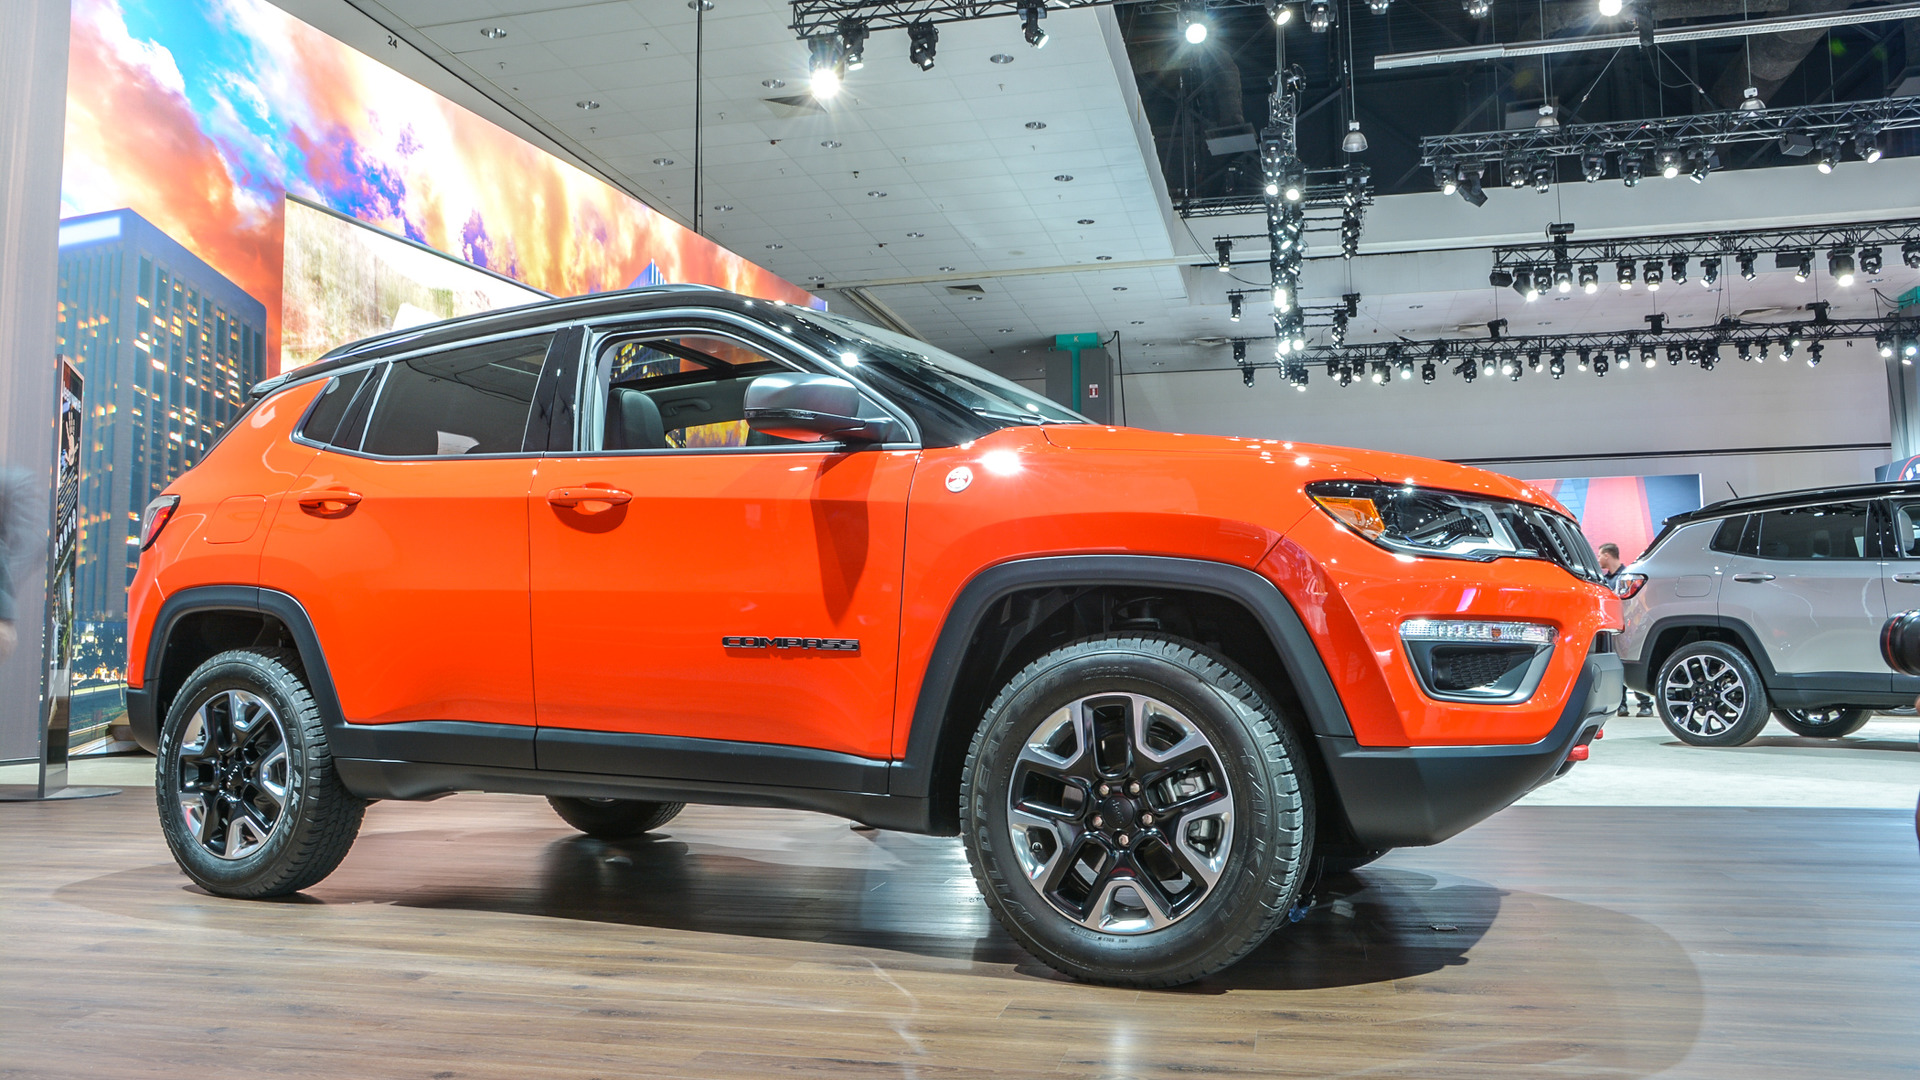 2017 Jeep Compass makes makes North American debut with 180 hp and 7.9 L